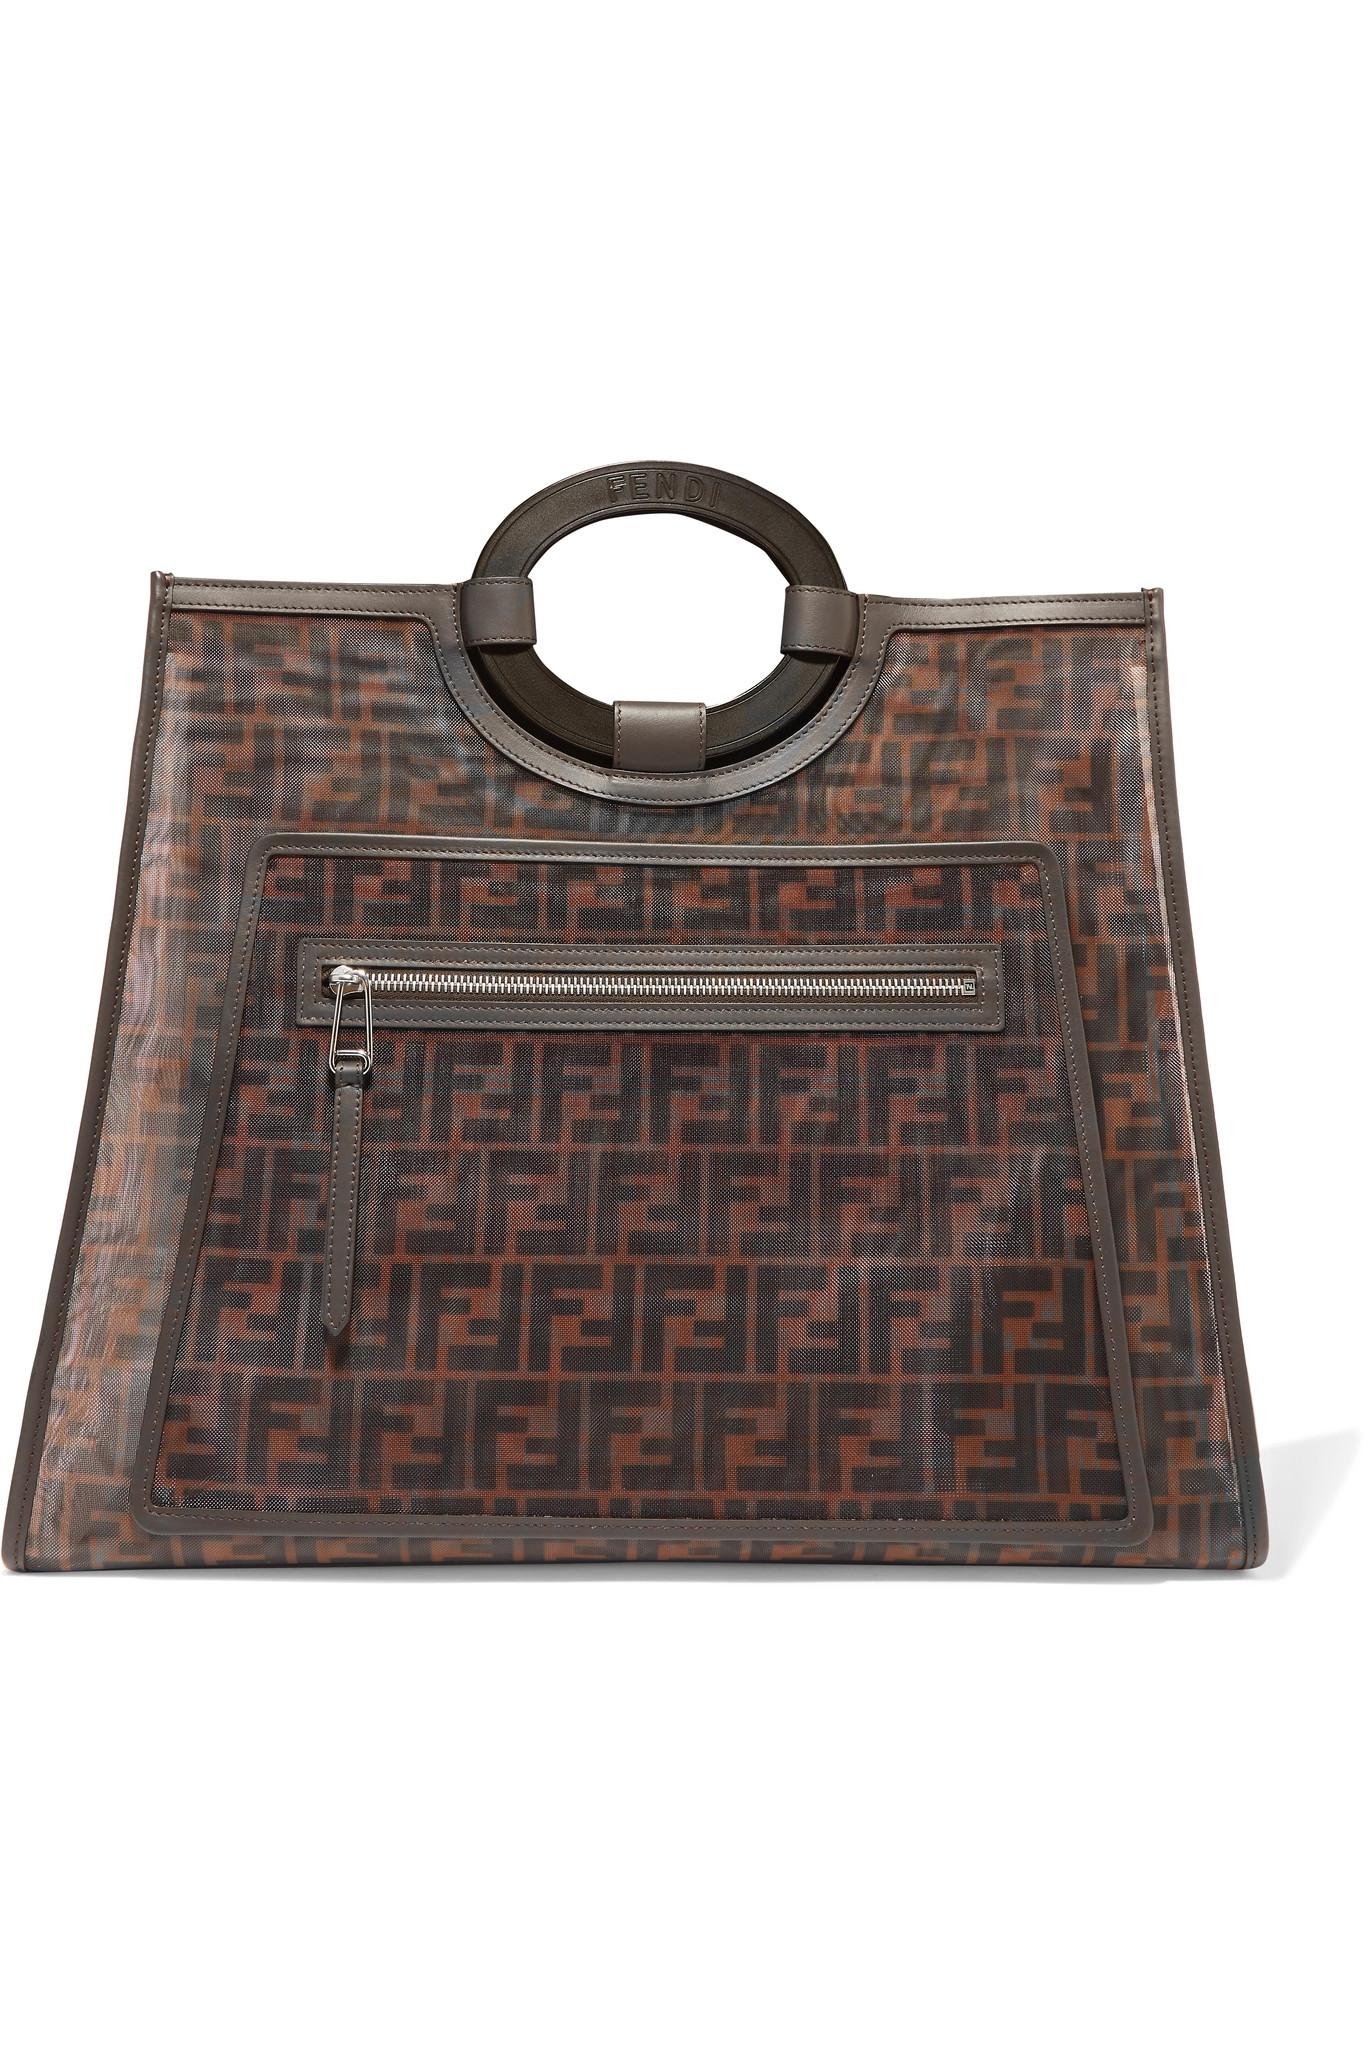 caf102c42c57 Fendi Runaway Large Leather-trimmed Printed Mesh Tote in Brown - Lyst